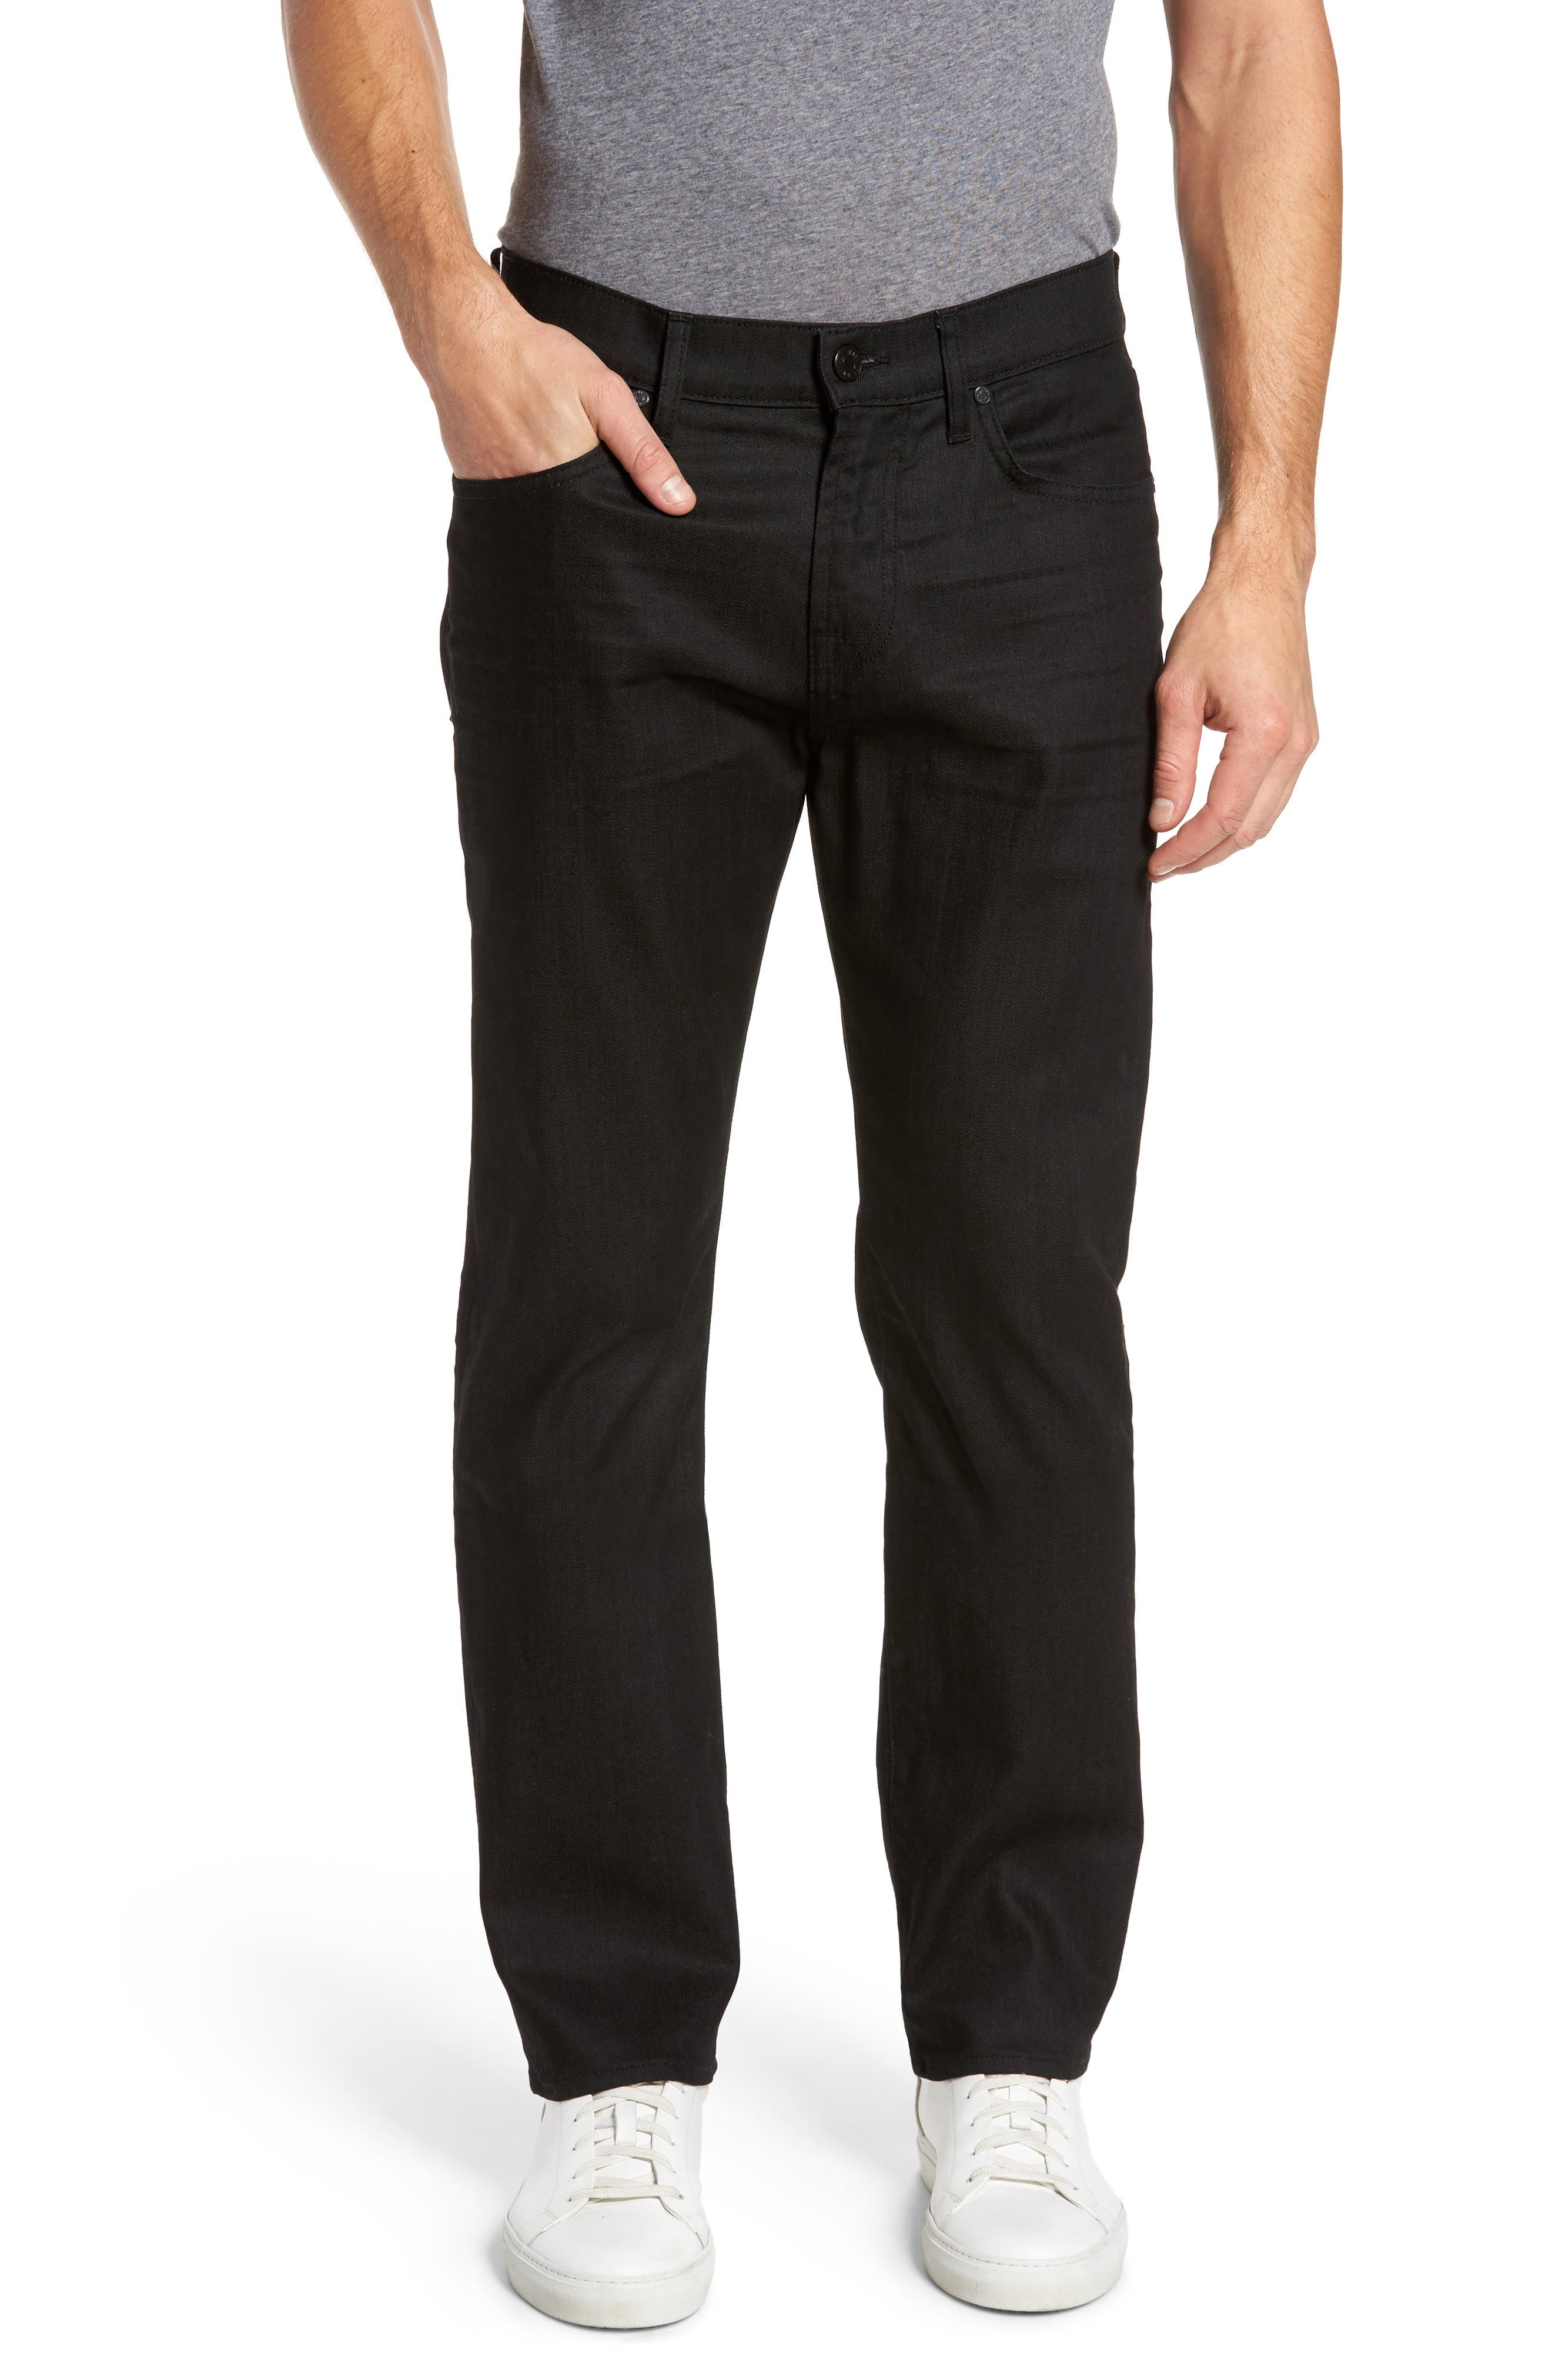 7 For All Mankind® The Straight Slim Straight Fit Jeans (Soirée Black)